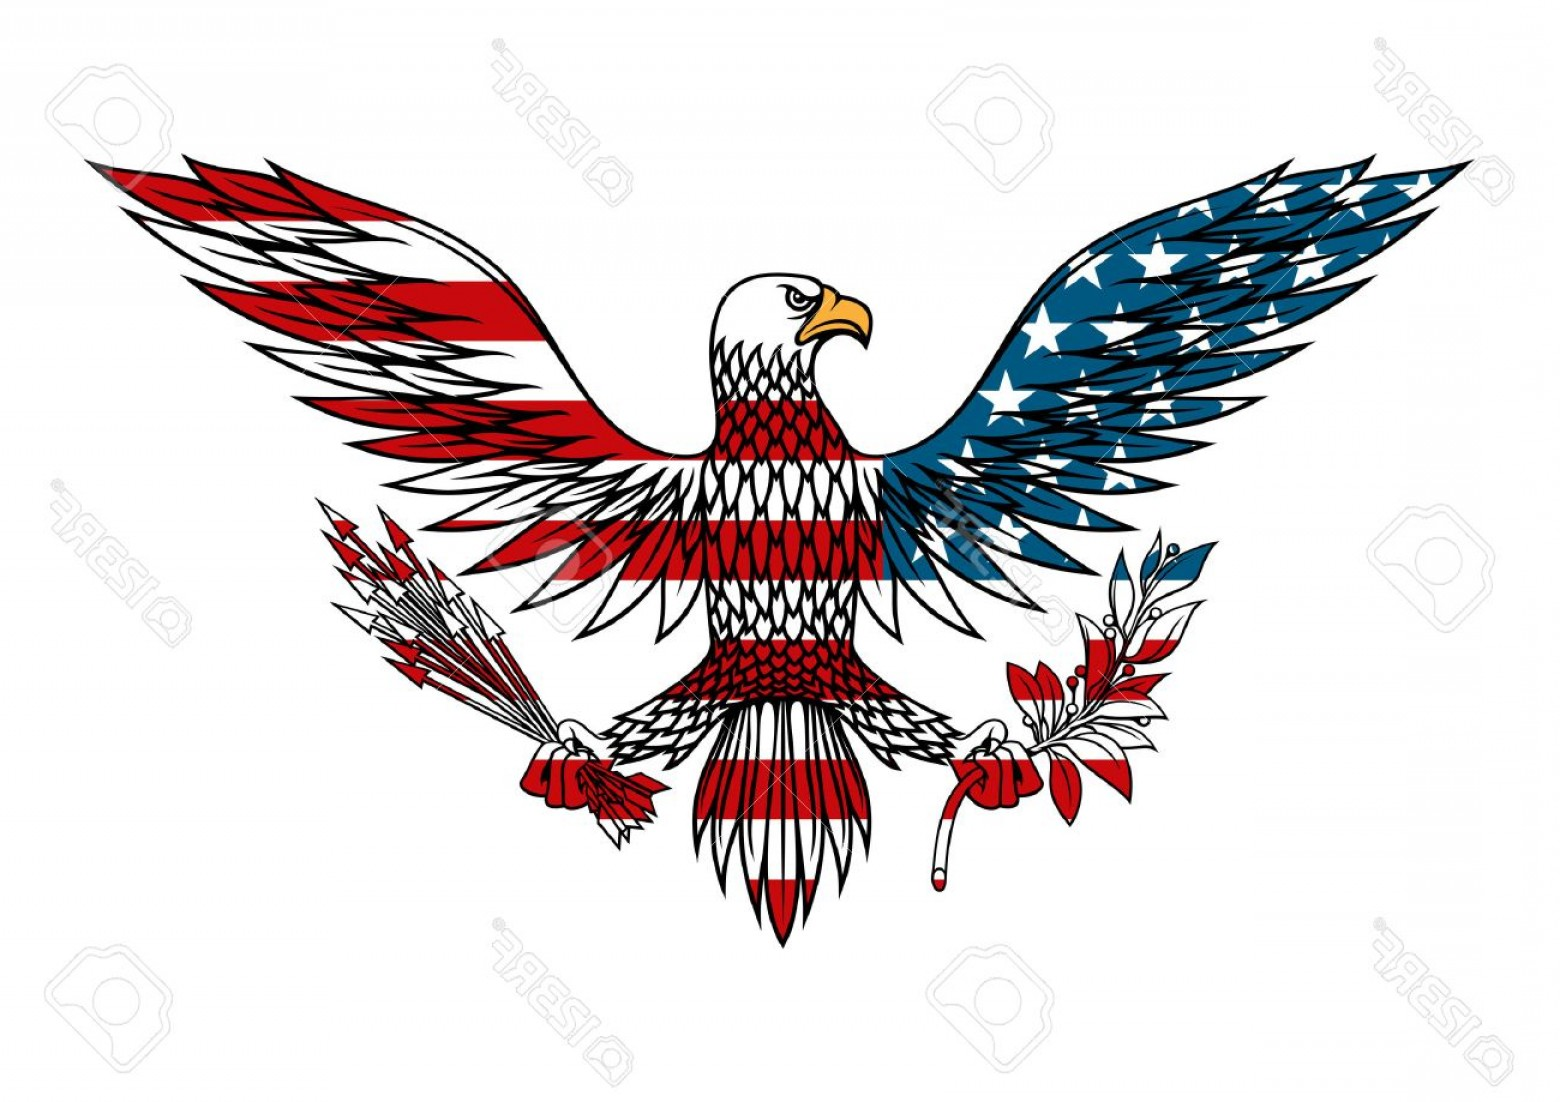 Patriotic Bald Eagle Vector: Photostock Vector American Eagle Icon With Outstretched Wings Holds Bundle Of Arrows And Olive Branch In Talons For Ta